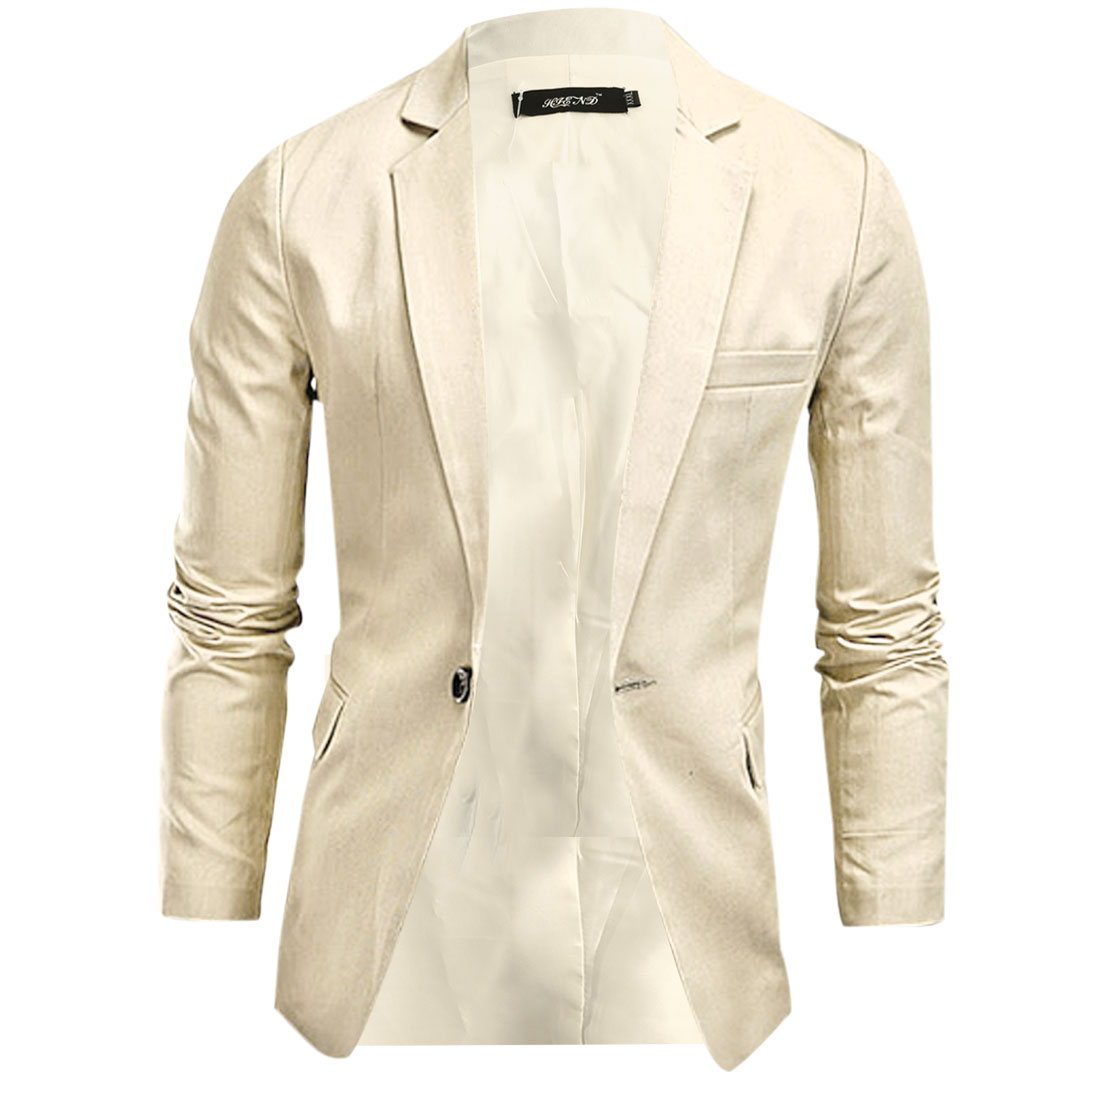 Men Pure Khaki Color One-Button Closure Slim Fit Blazer Jacket M